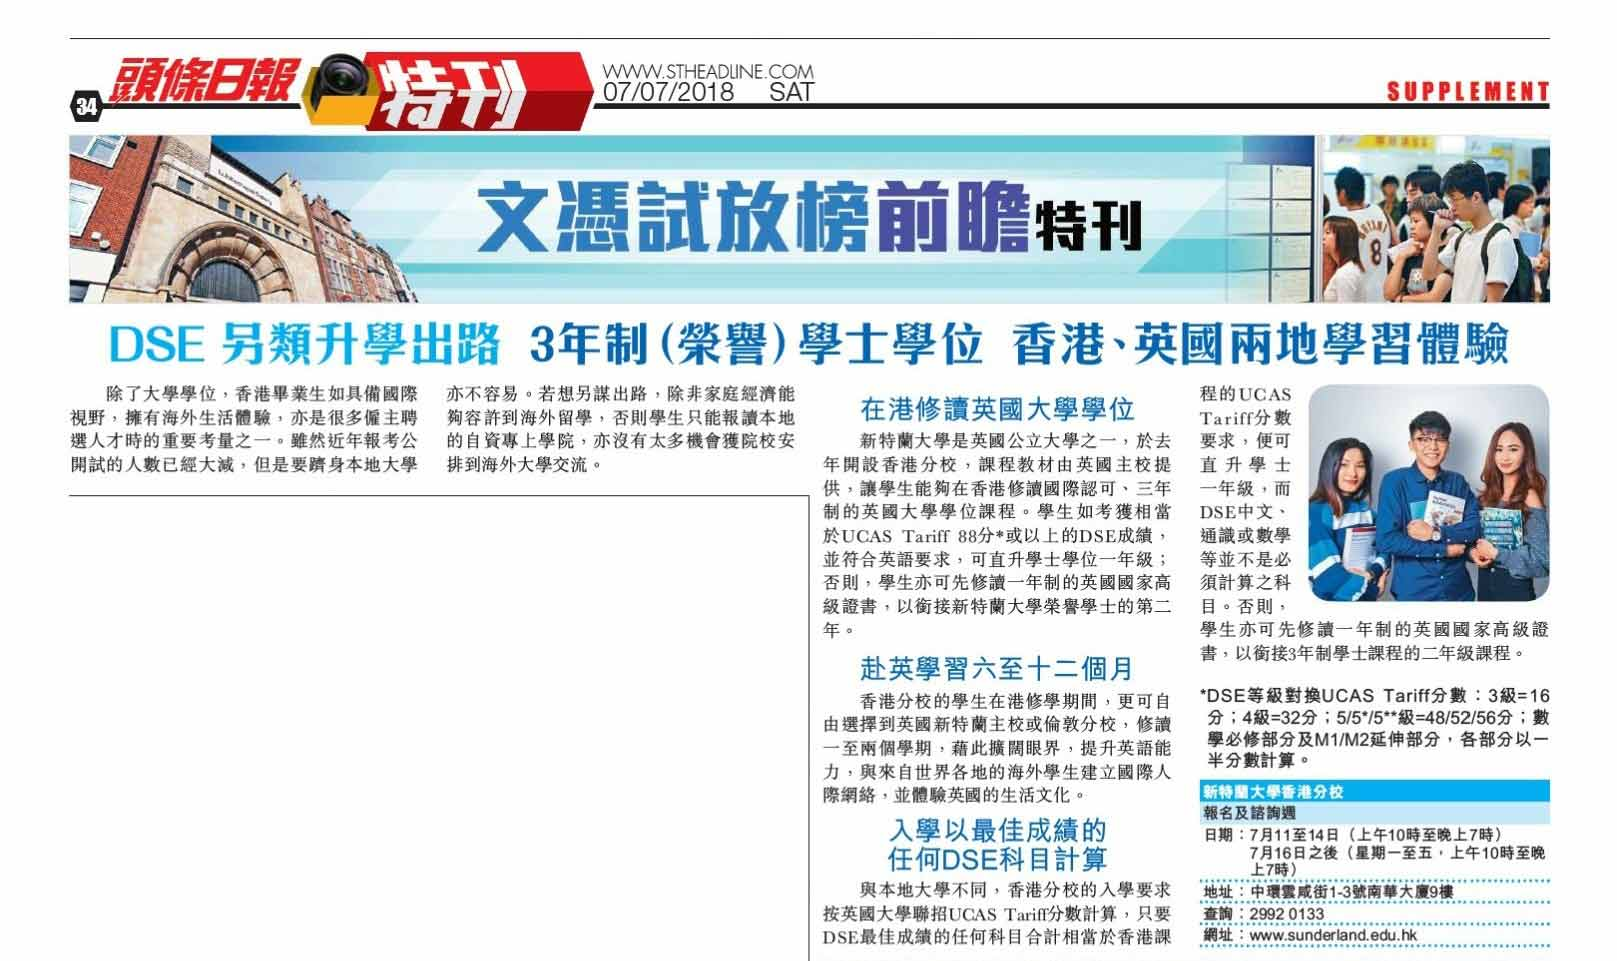 Headline Daily news coverage about University of Sunderland in Hong Kong